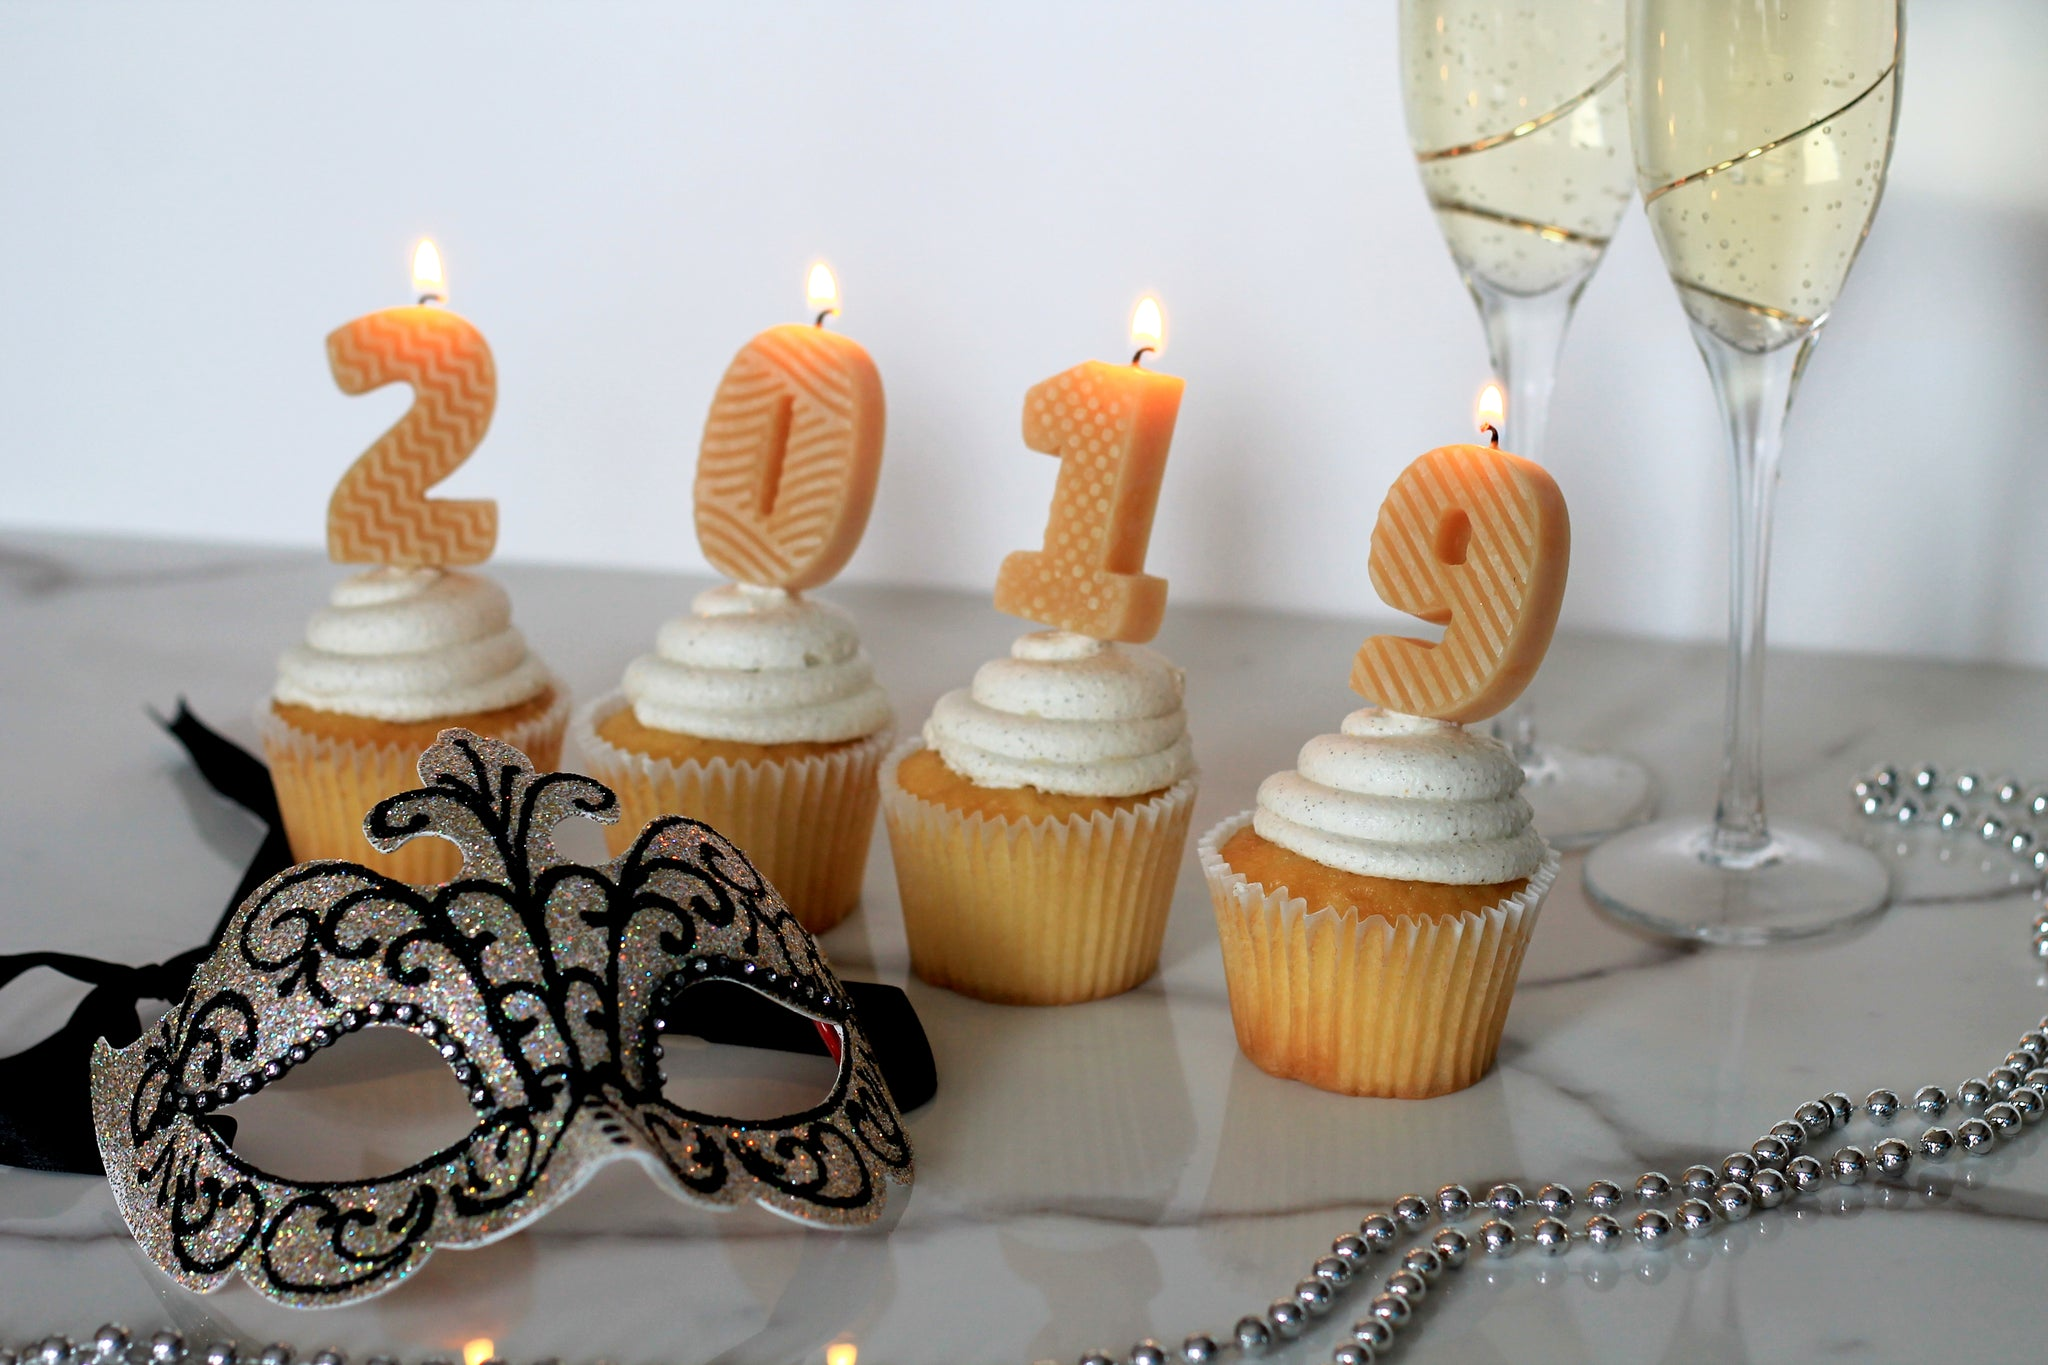 Happy New Year from Honey Candles!